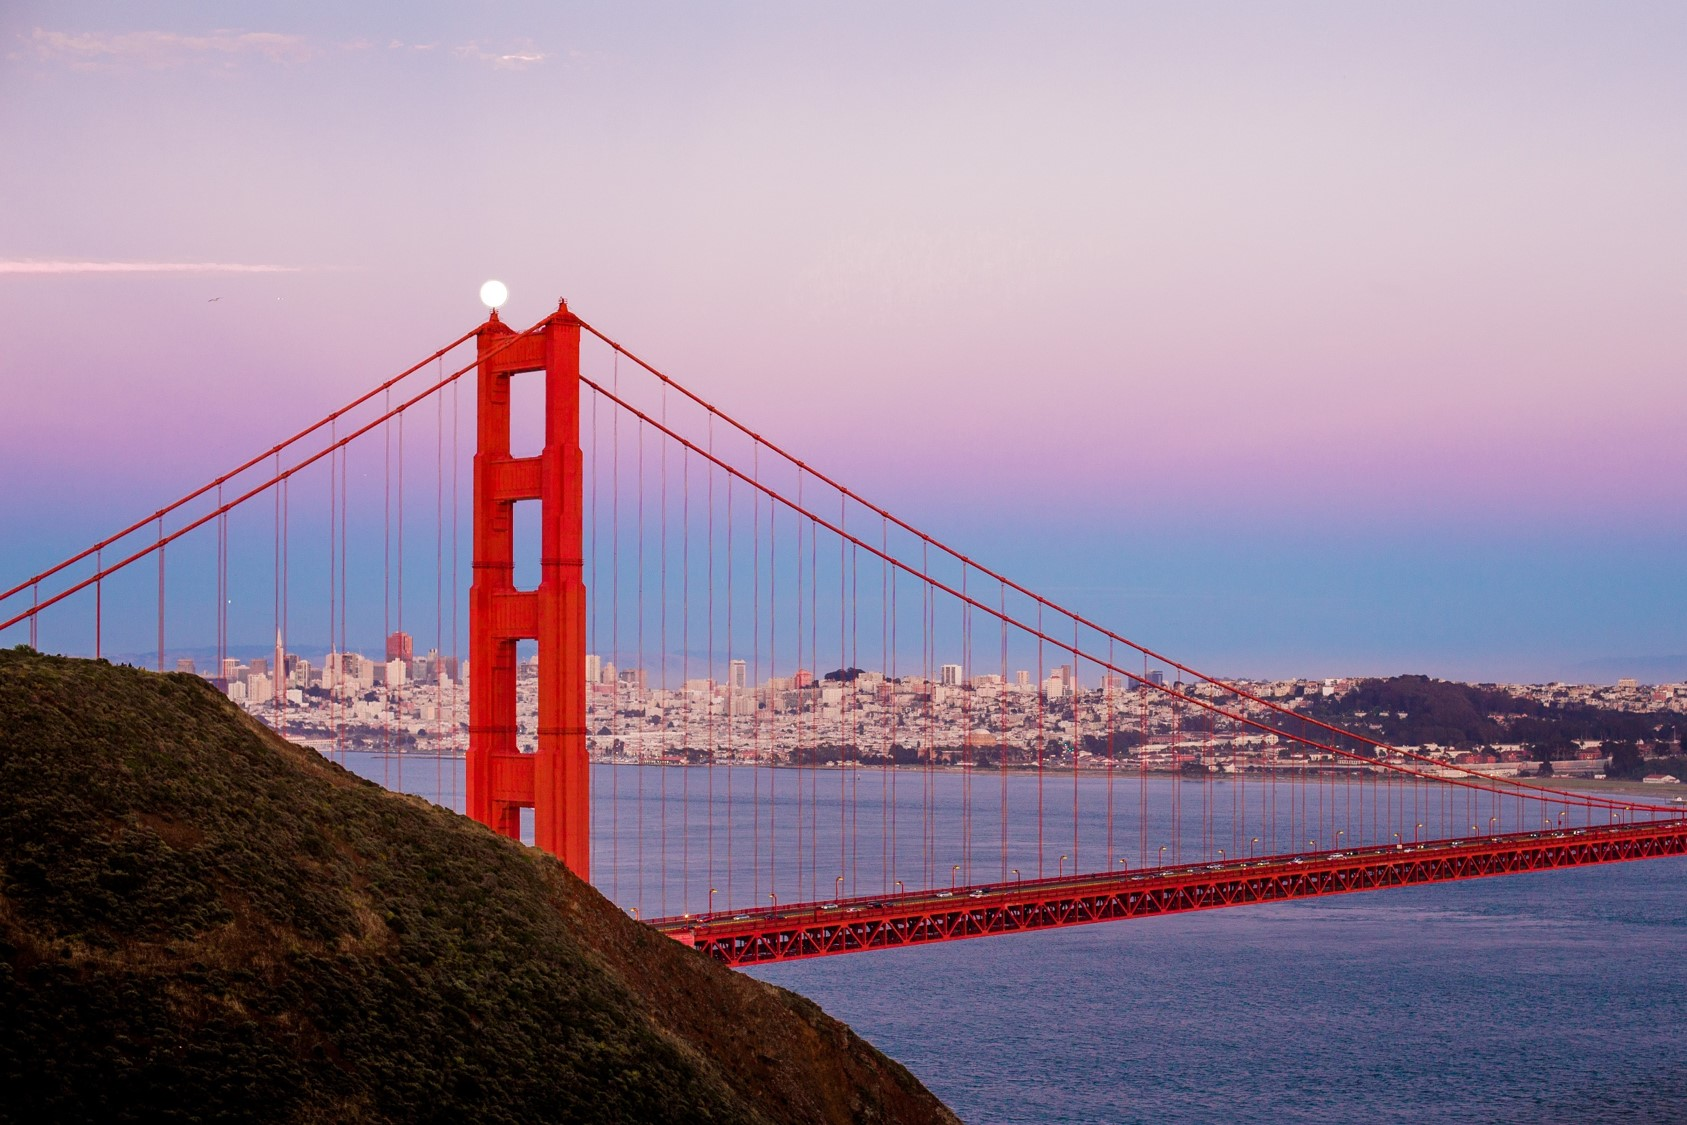 Widok na most Golden Gate w San Francisco